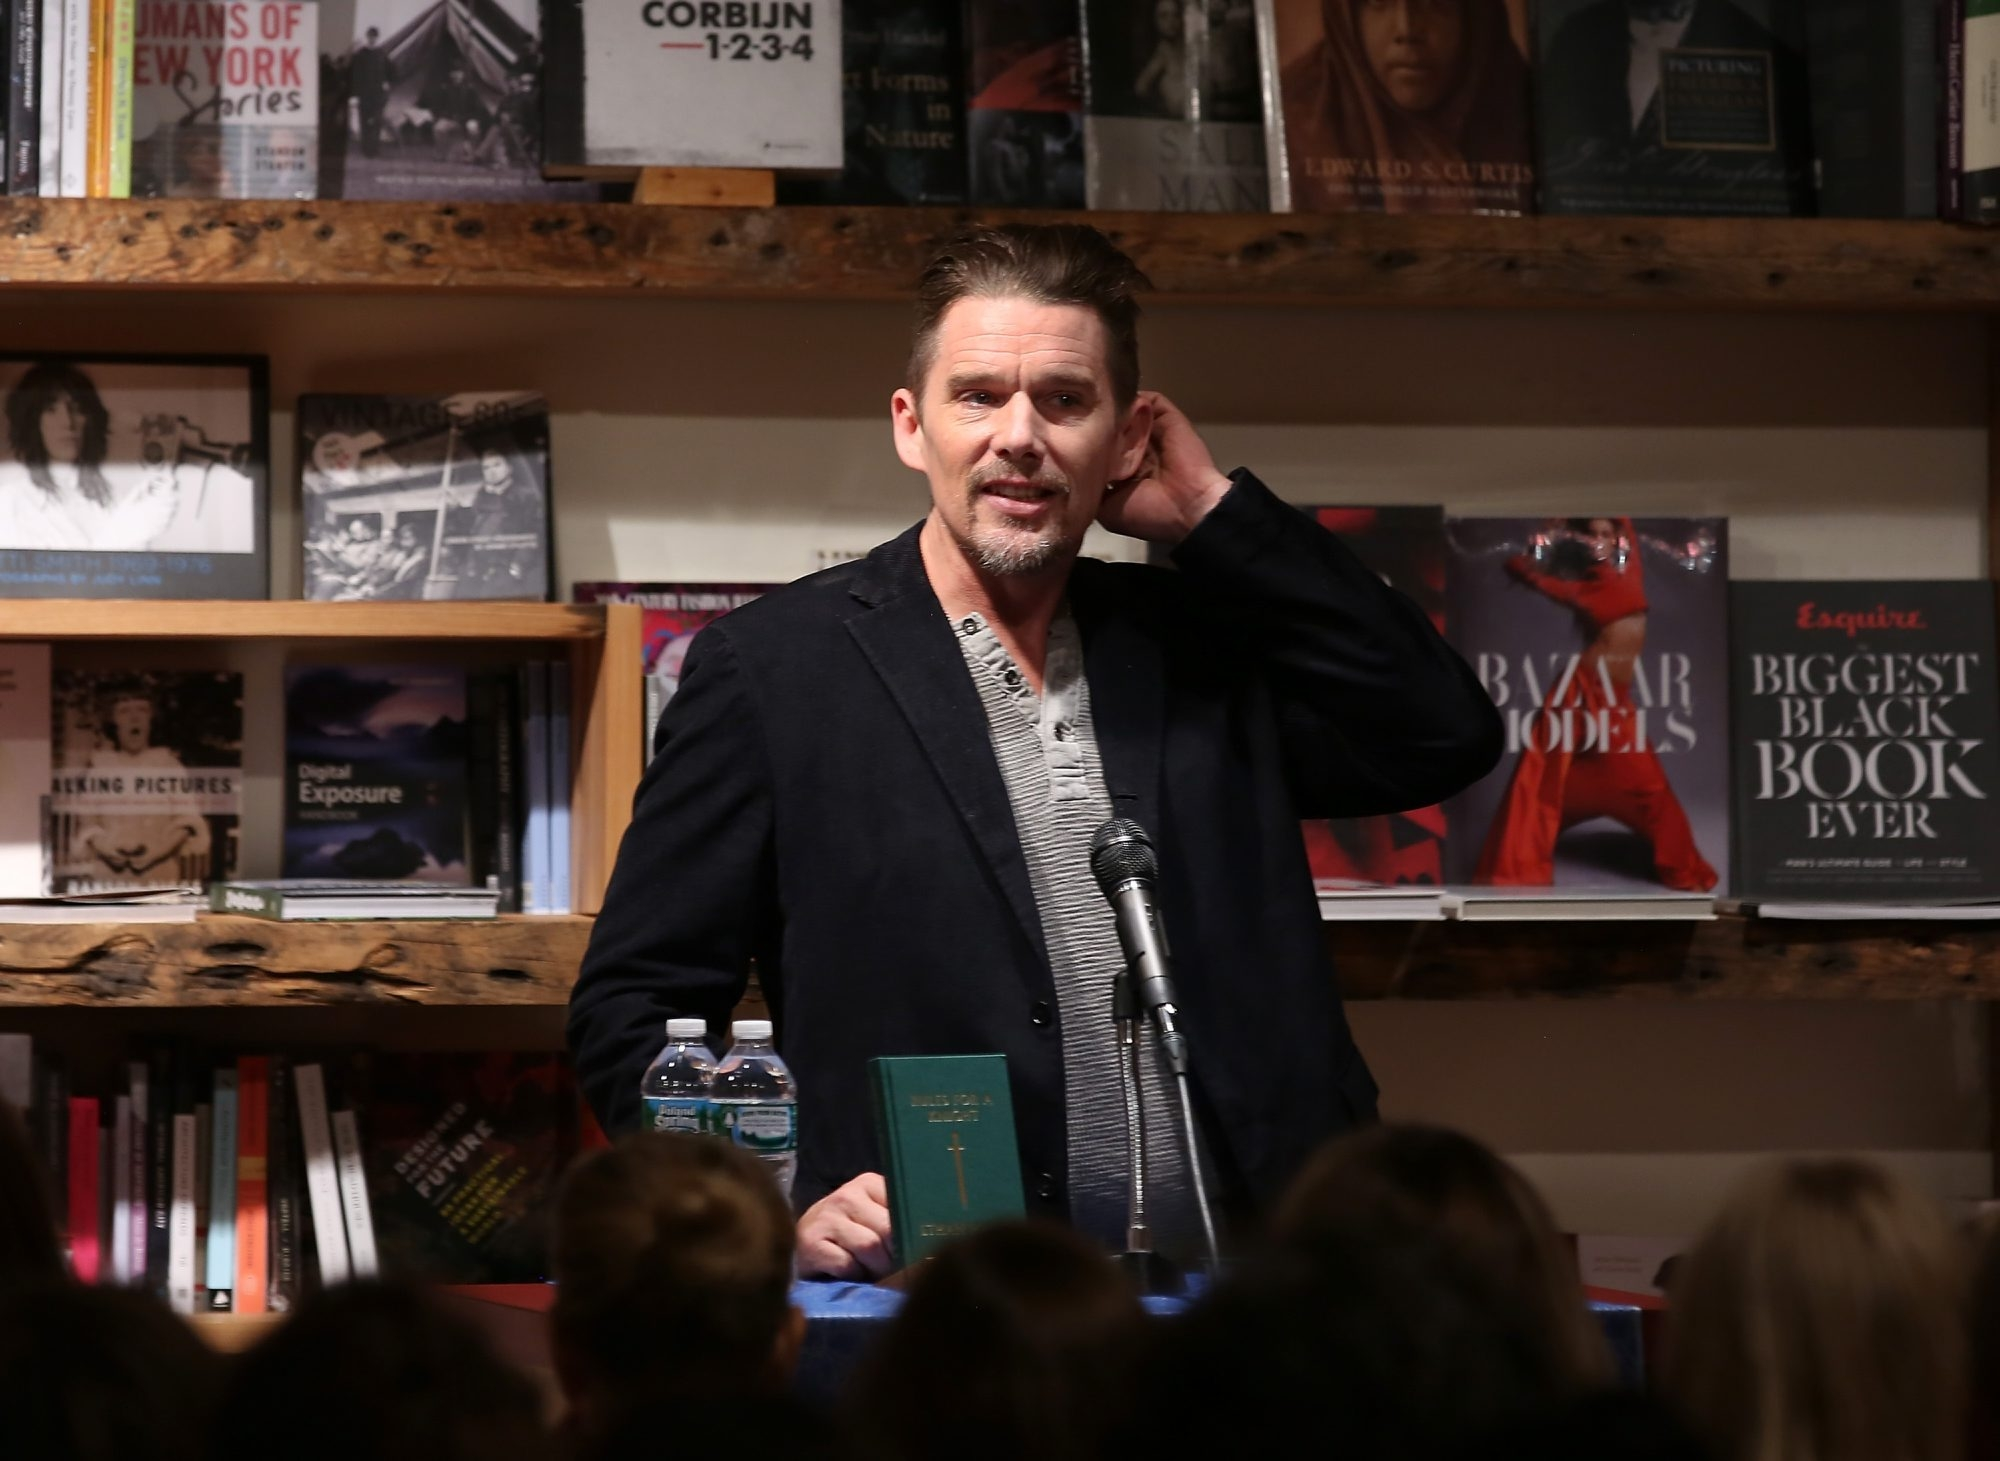 """Actor/author Ethan Hawke reads from his new book """"Rules For A Knight"""" at a signing for """"Rules For A Knight"""" in New York City."""